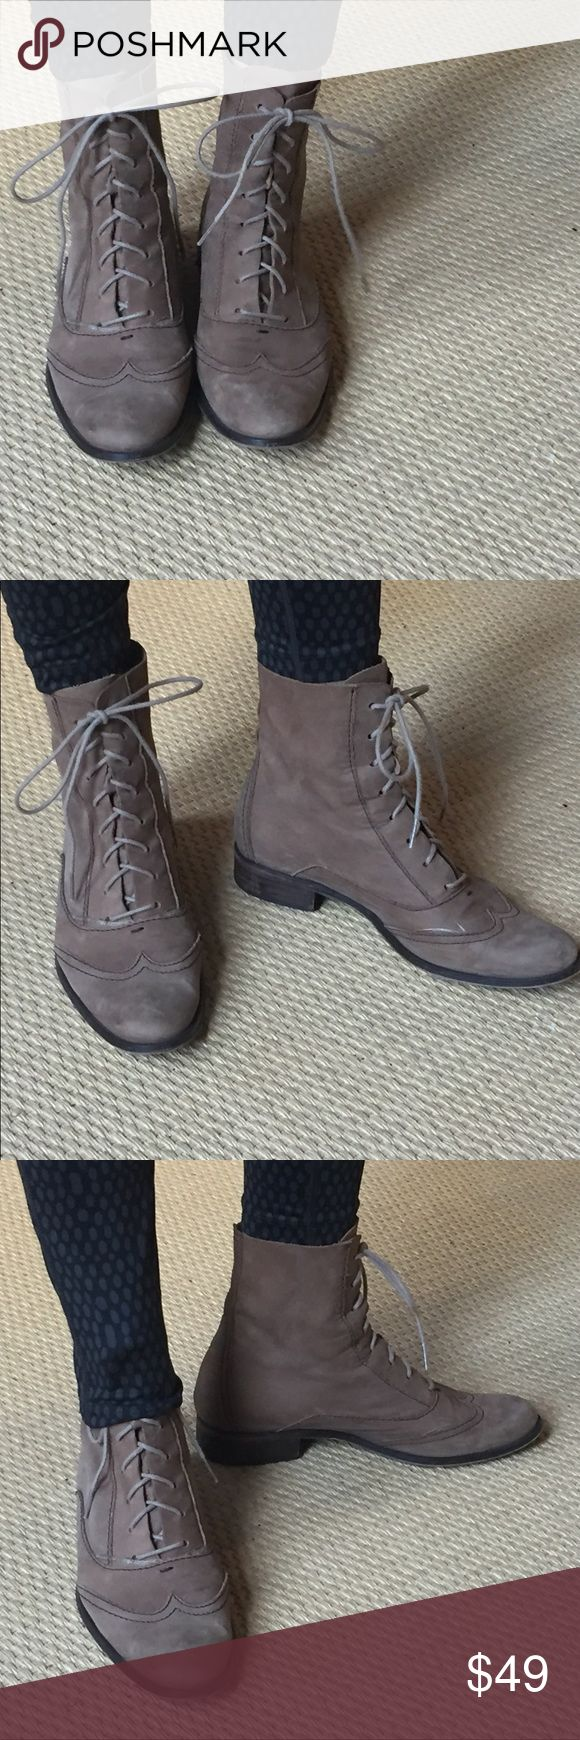 ZARA Hipster Victorian Lace-Up Boot   Beautiful Taupe color - BUTTERY soft lamb skin leather, taupe, unlined. Worn a little bit but they get better with age - something you'll keep for years! Great with jeans, or funky with tights  PLEASE NOTE - these are a 39, but I wear an 8.5 and these fit great. Thanks! Zara Shoes Lace Up Boots